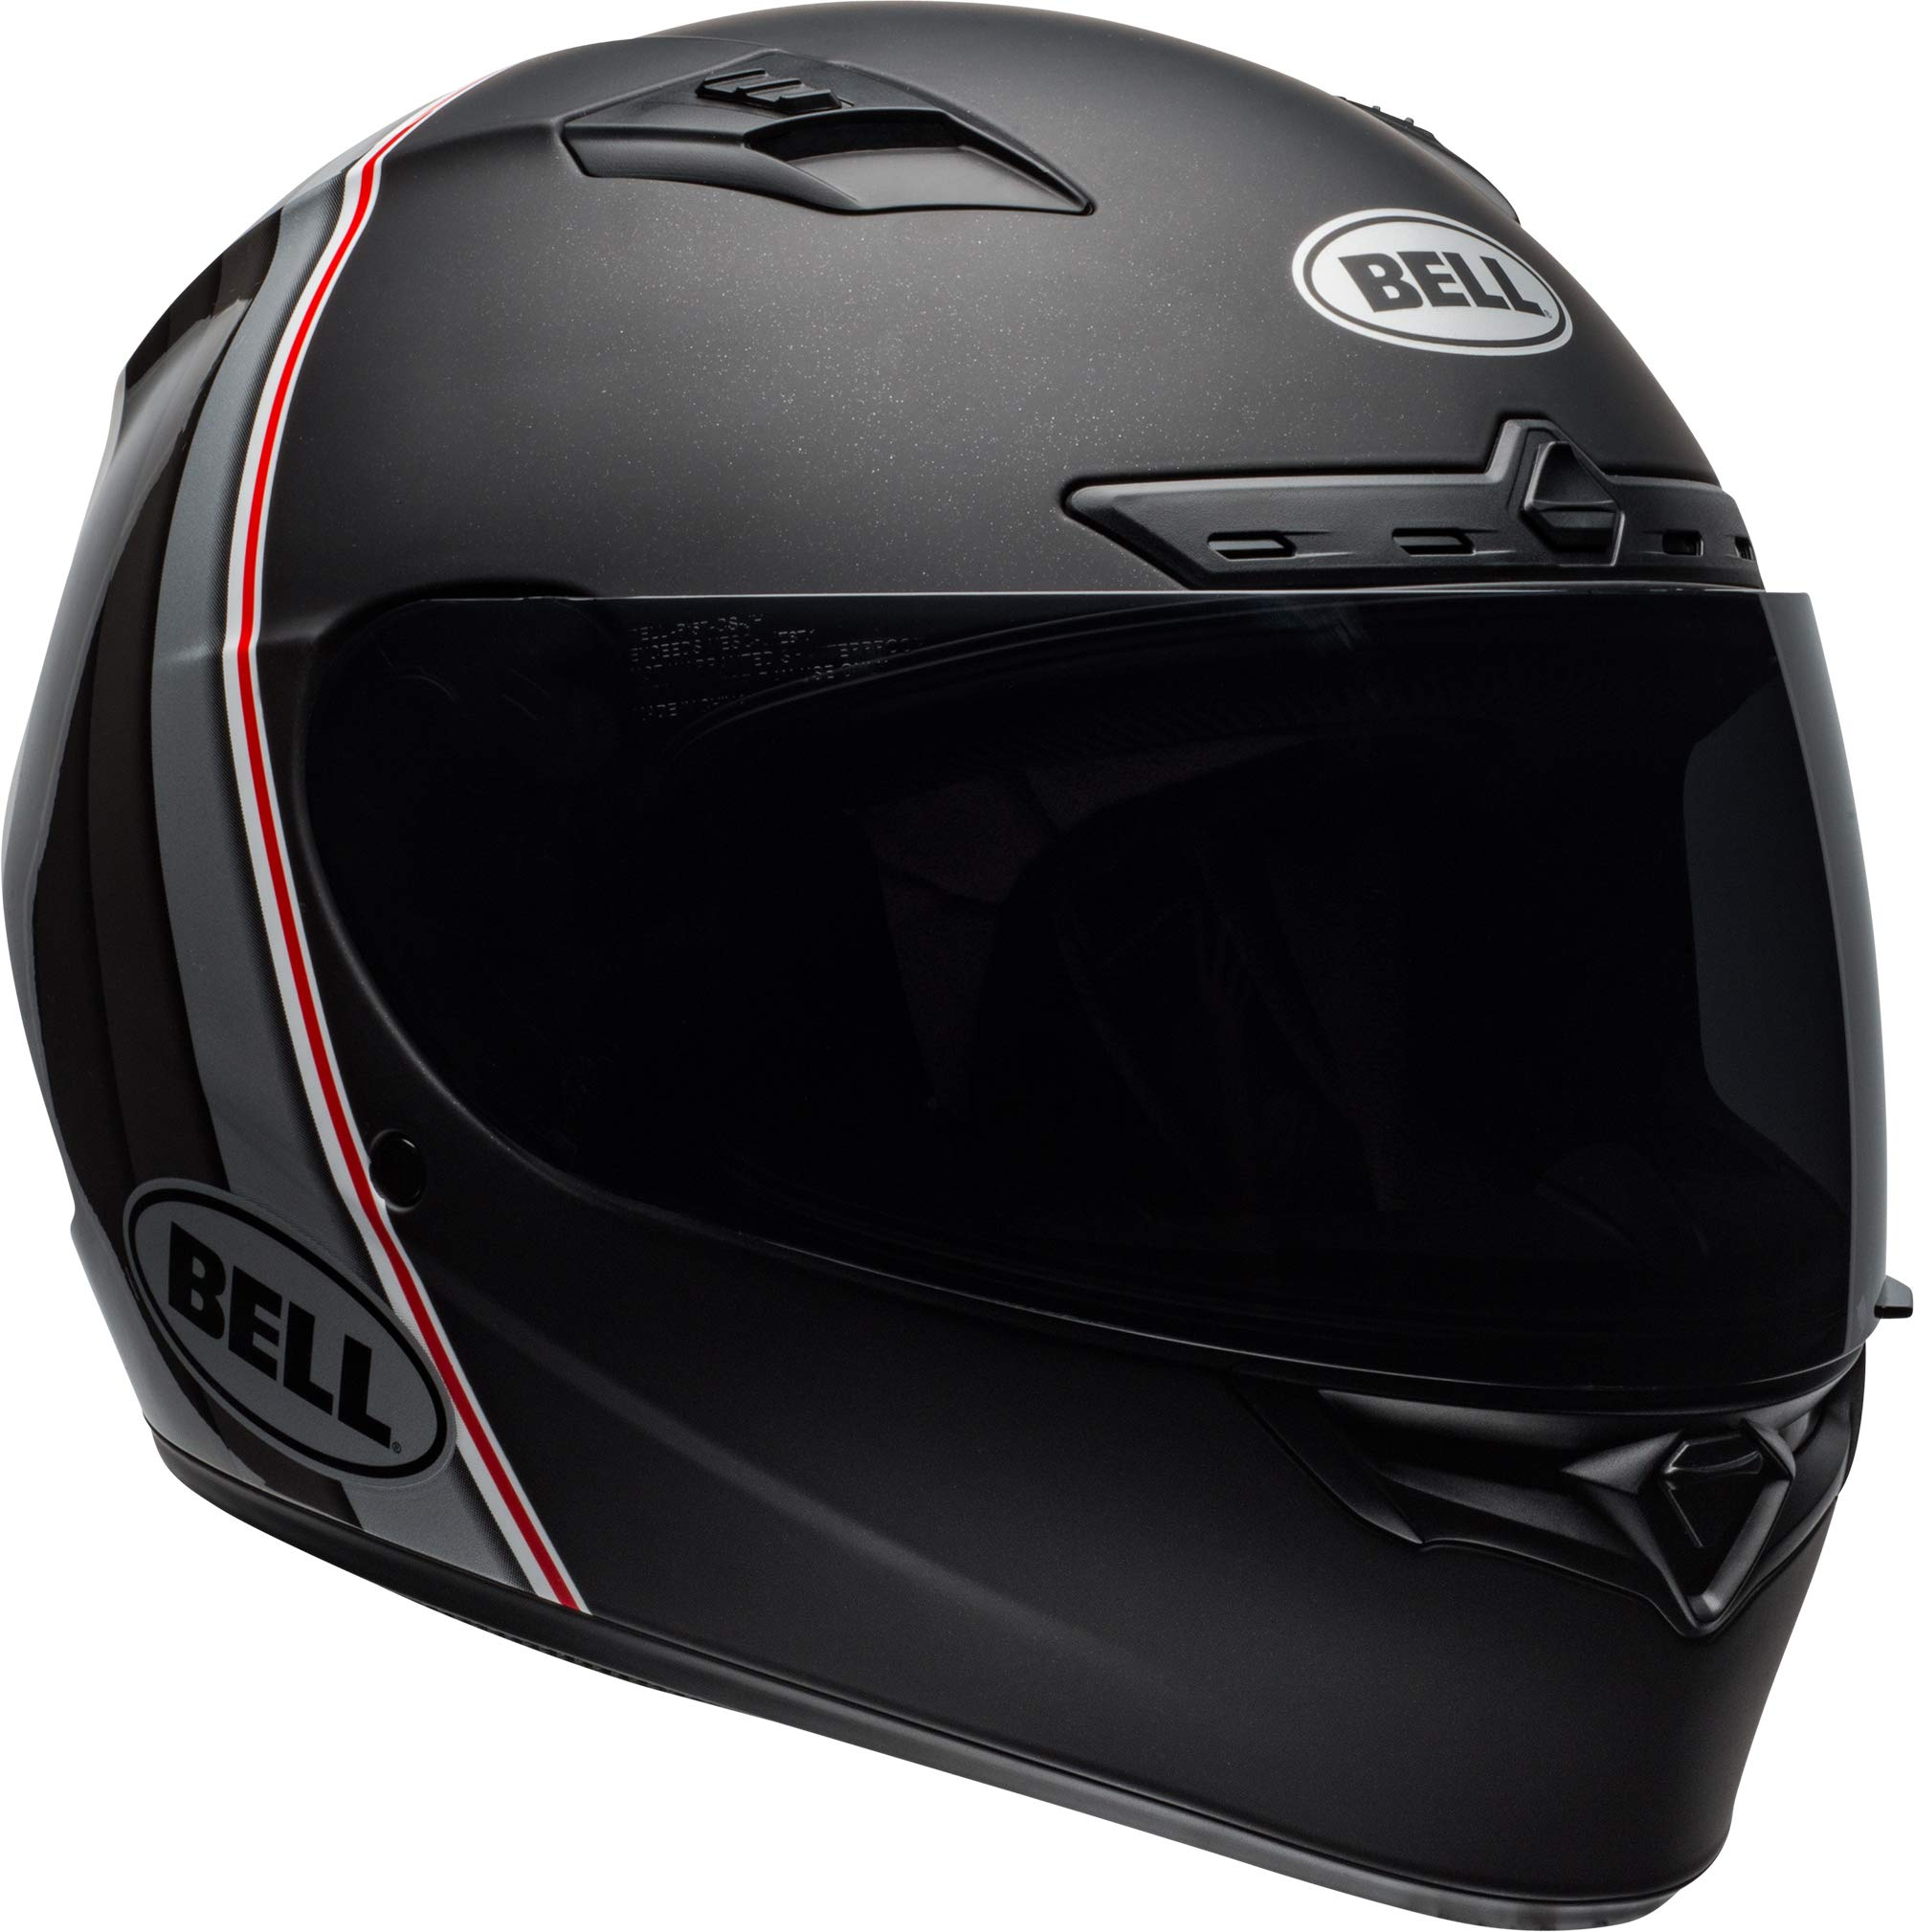 Bell Qualifier DLX MIPS Full-Face Motorcycle Helmet (Illusion Matte/Gloss Black/Silver, XXX-Large)